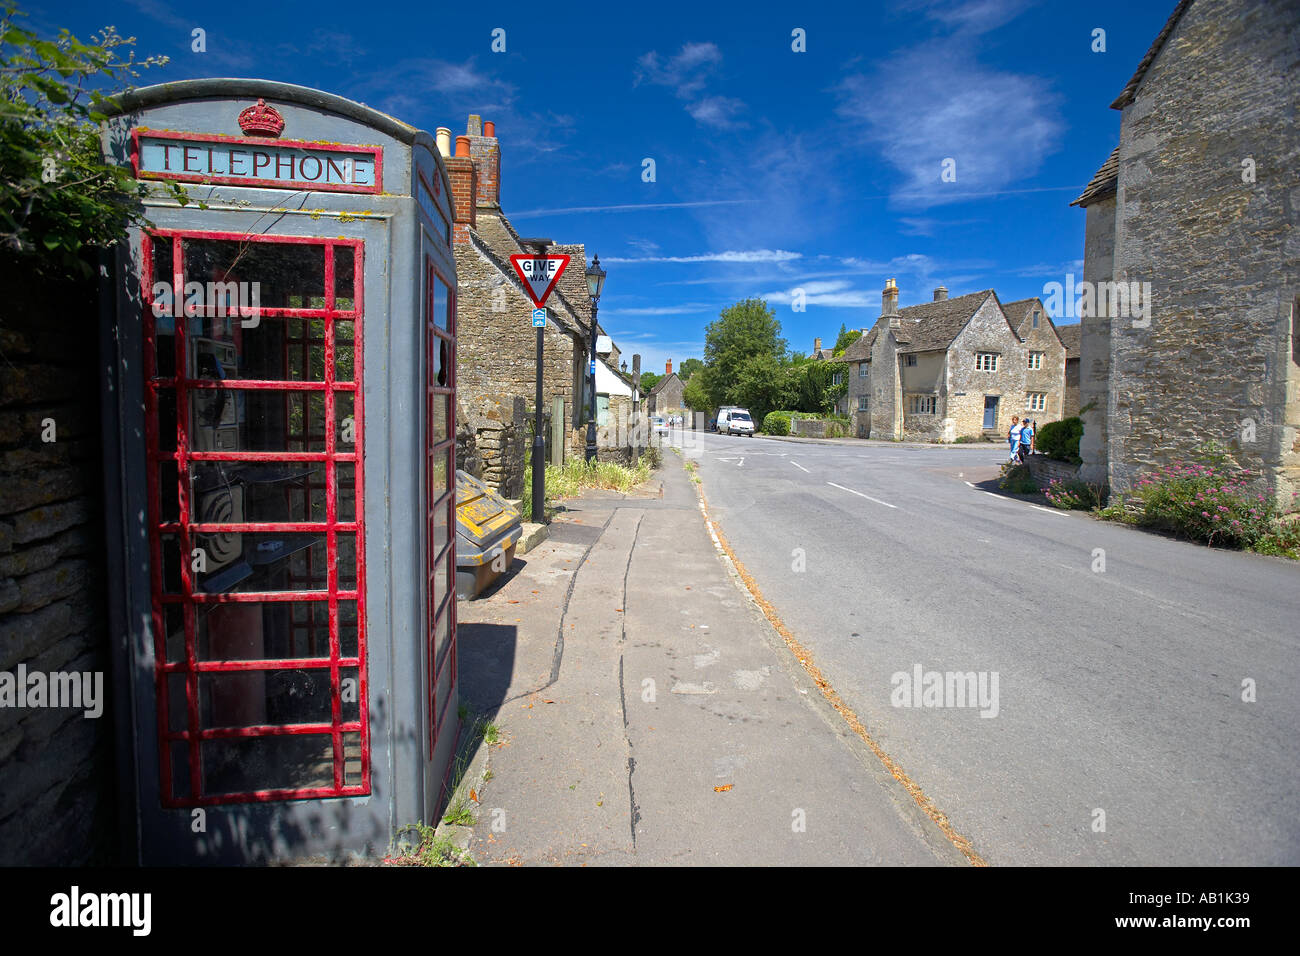 Grey Telephone Kiosk in the Village of Lacock, Wiltshire, England, UK - Stock Image